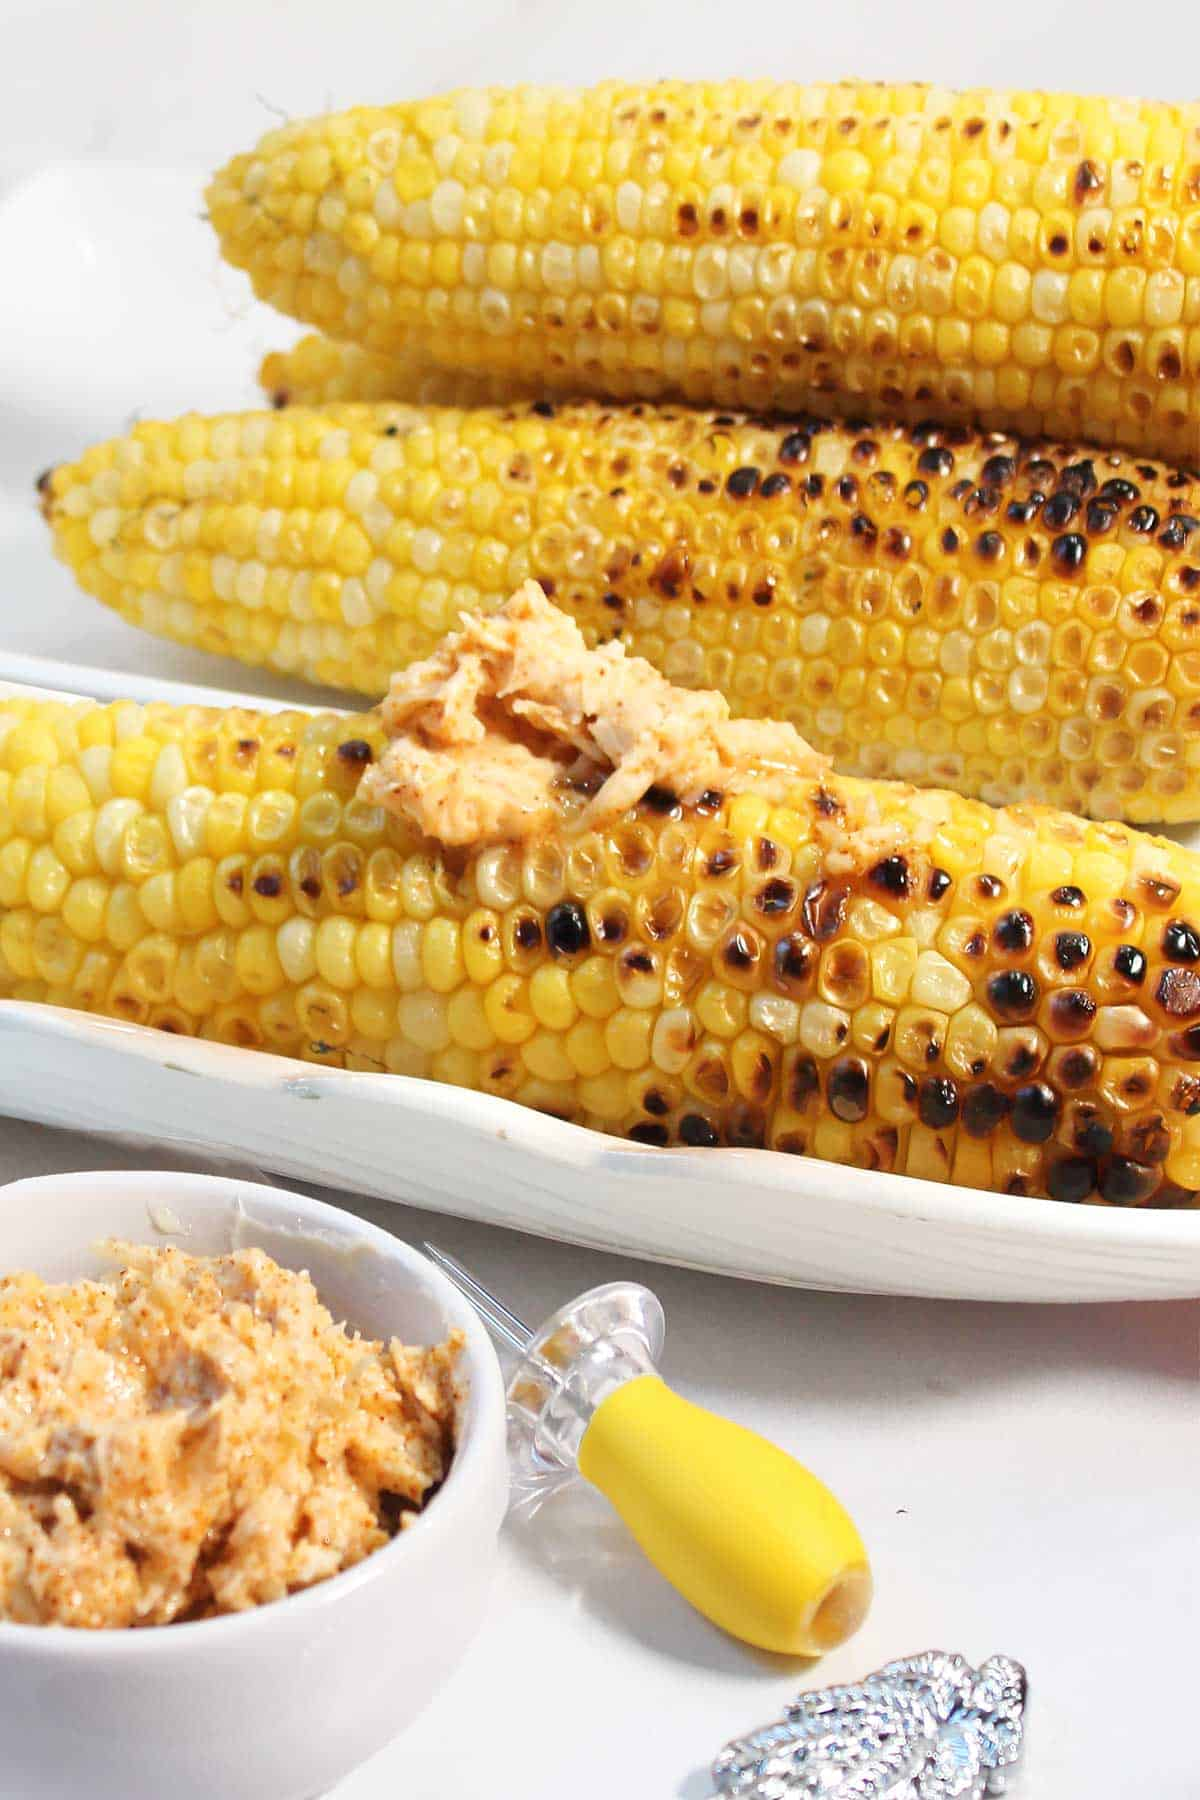 Grilled corn on cob with parmesan chili butter smeared on front ear.